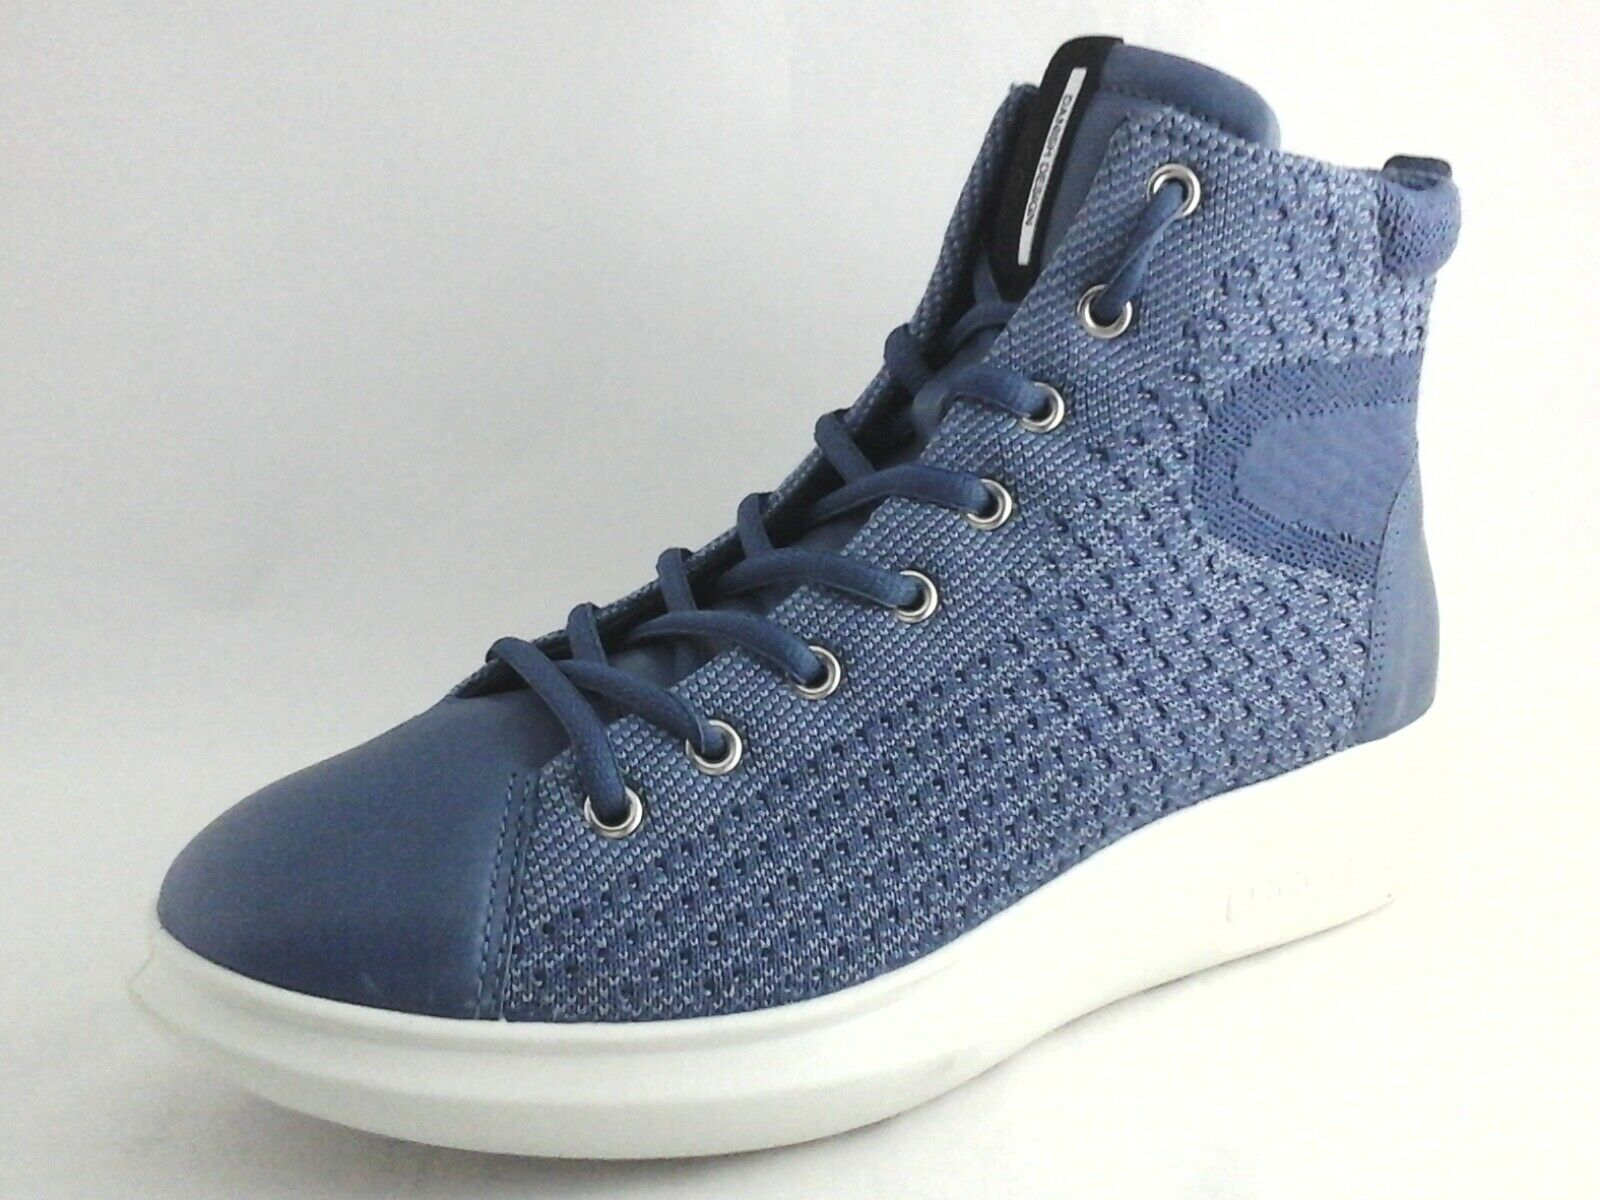 ECCO Danish Design bluee High Top shoes Knit Leather Women's US 8 8.5